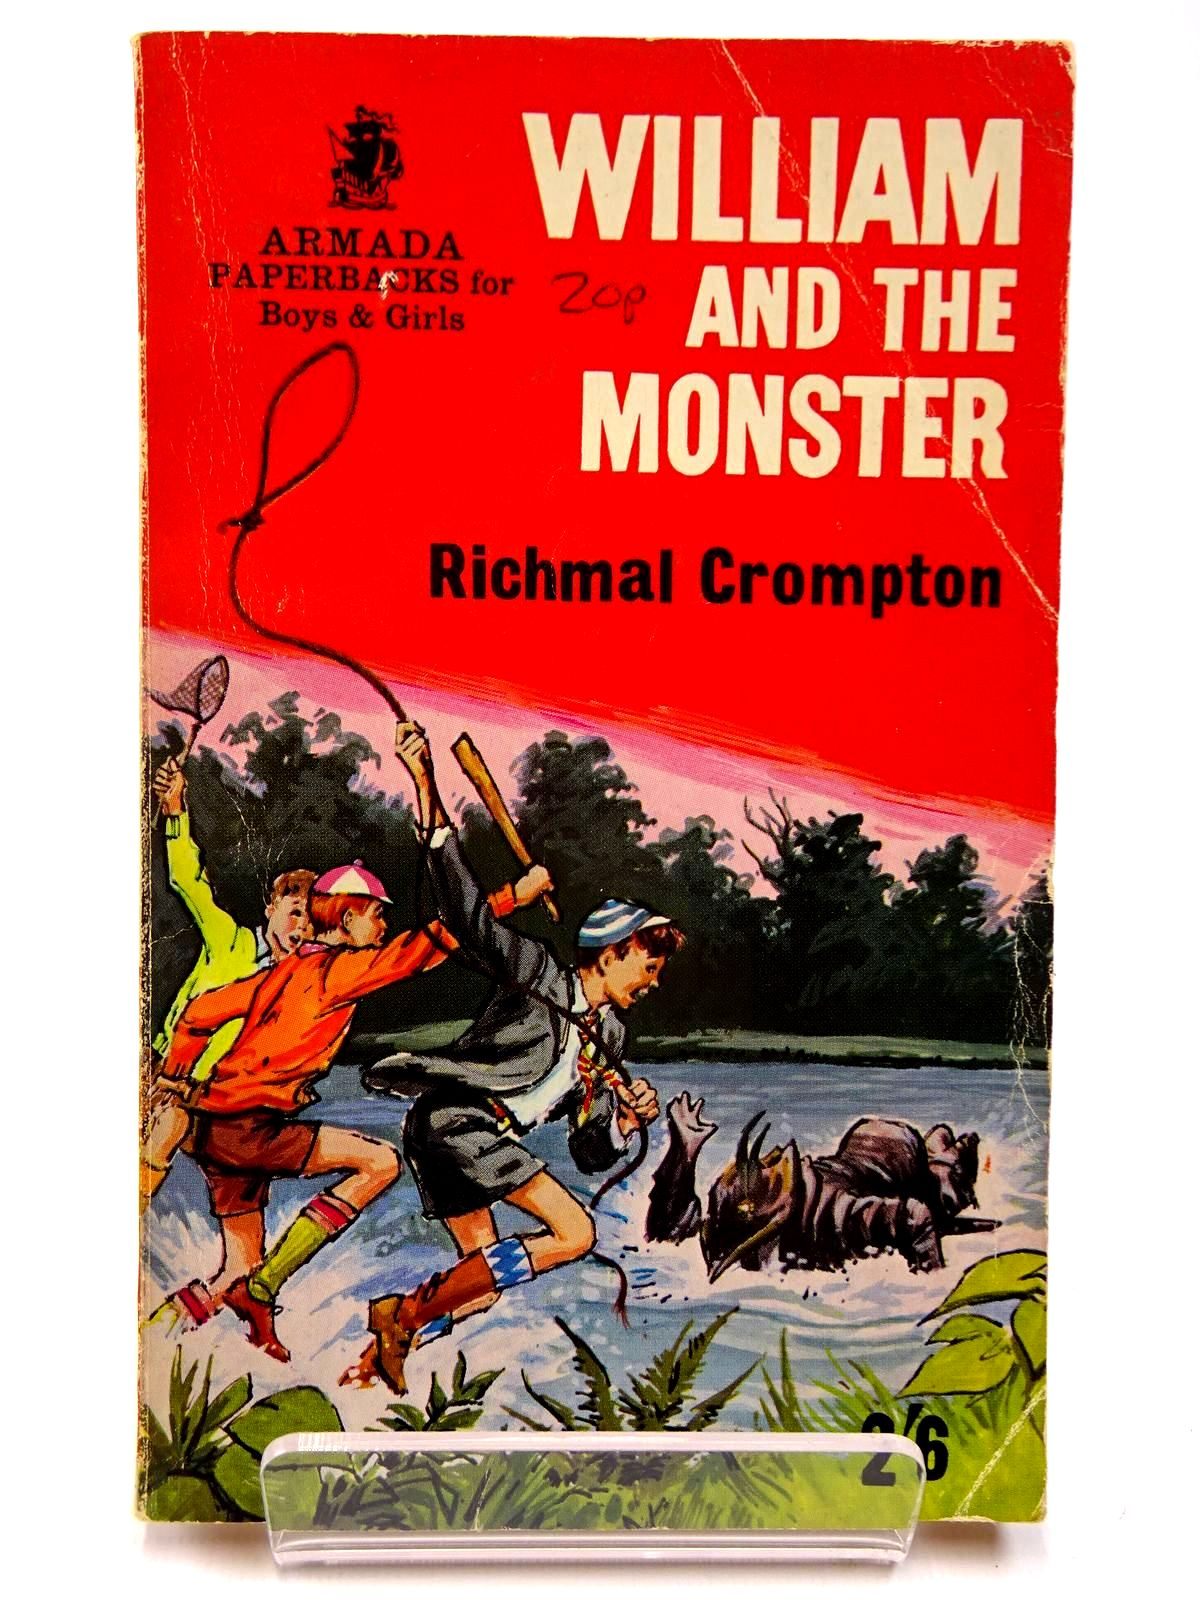 Photo of WILLIAM AND THE MONSTER written by Crompton, Richmal illustrated by Archer, Peter published by Armada (STOCK CODE: 2130552)  for sale by Stella & Rose's Books